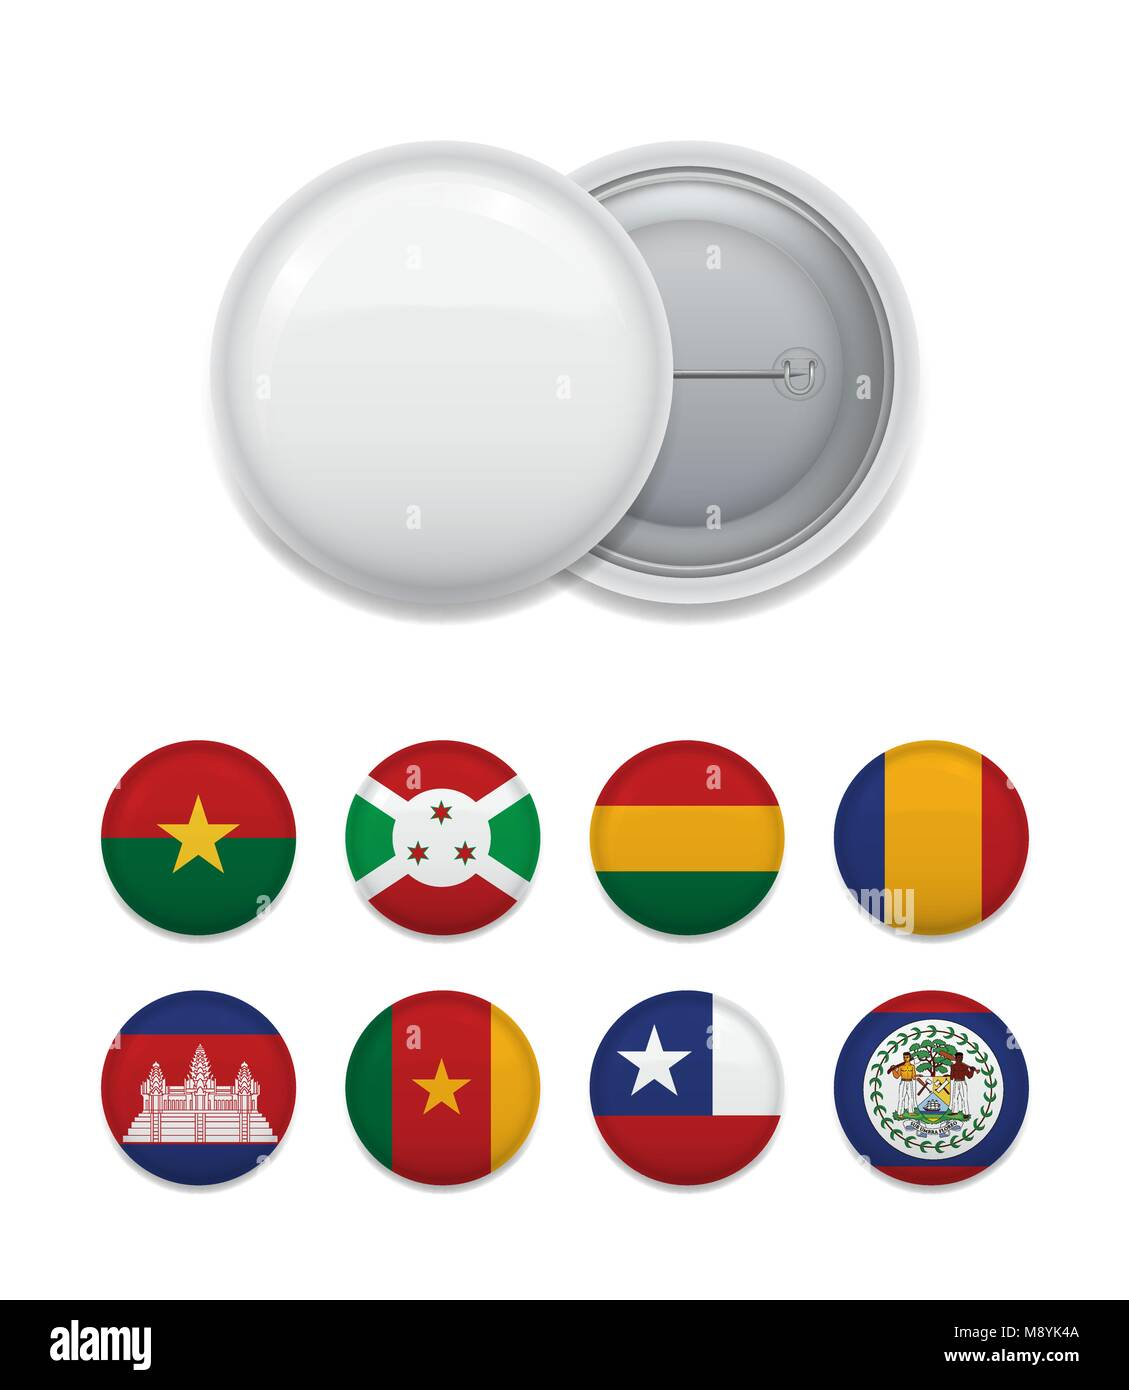 Blank badge templatewith flags set - Stock Image